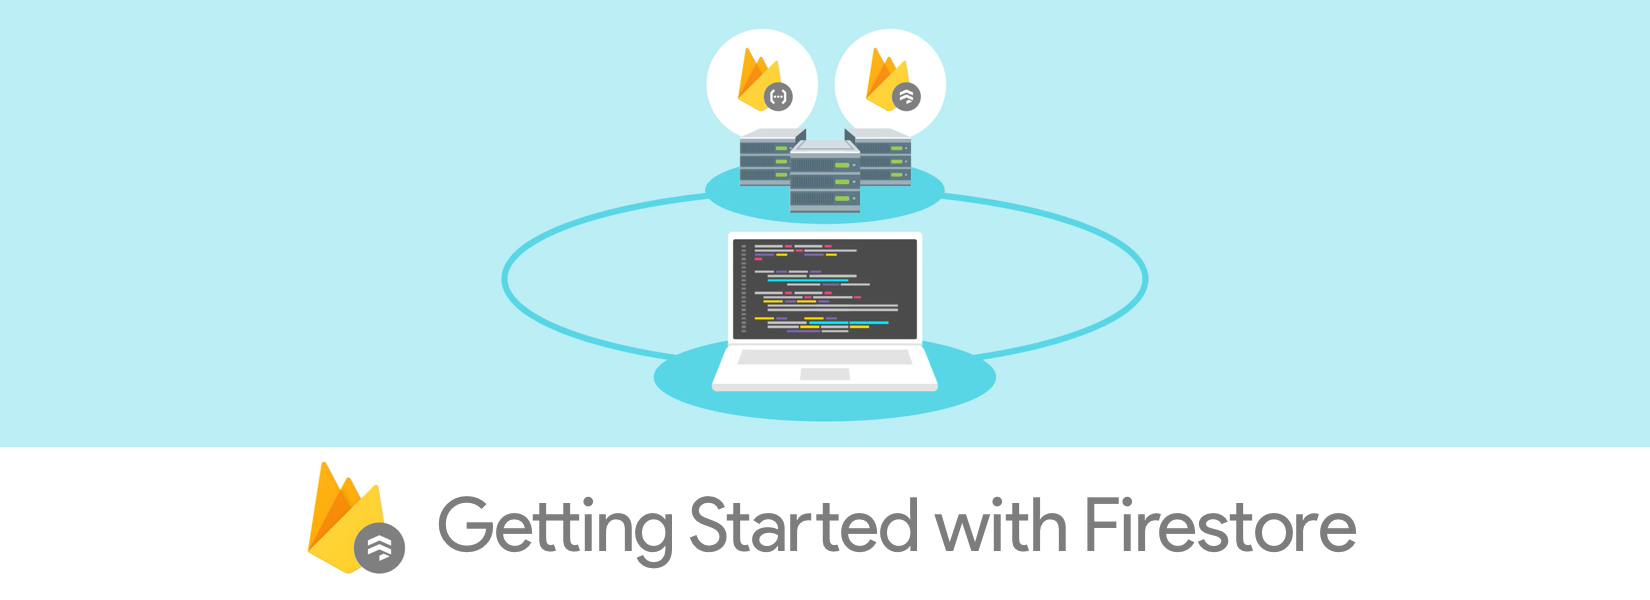 5 minute guide to deploying your first application using Firebase CloudStore [How-to]